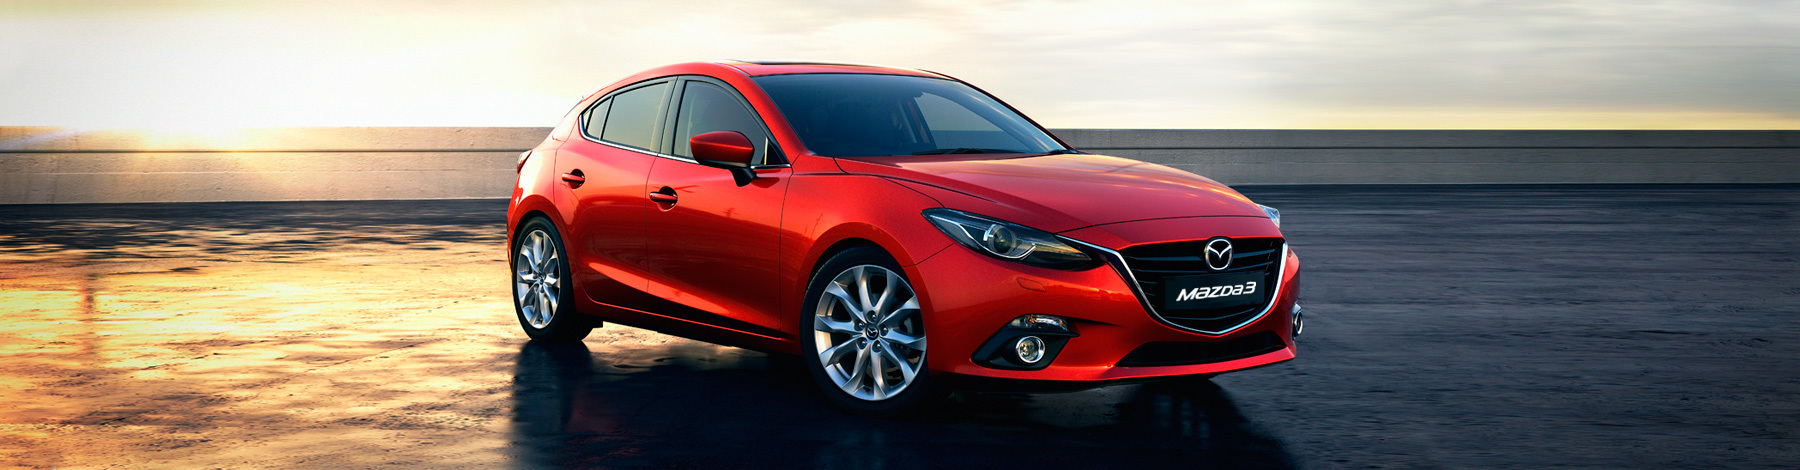 Search our Mazda 3 range